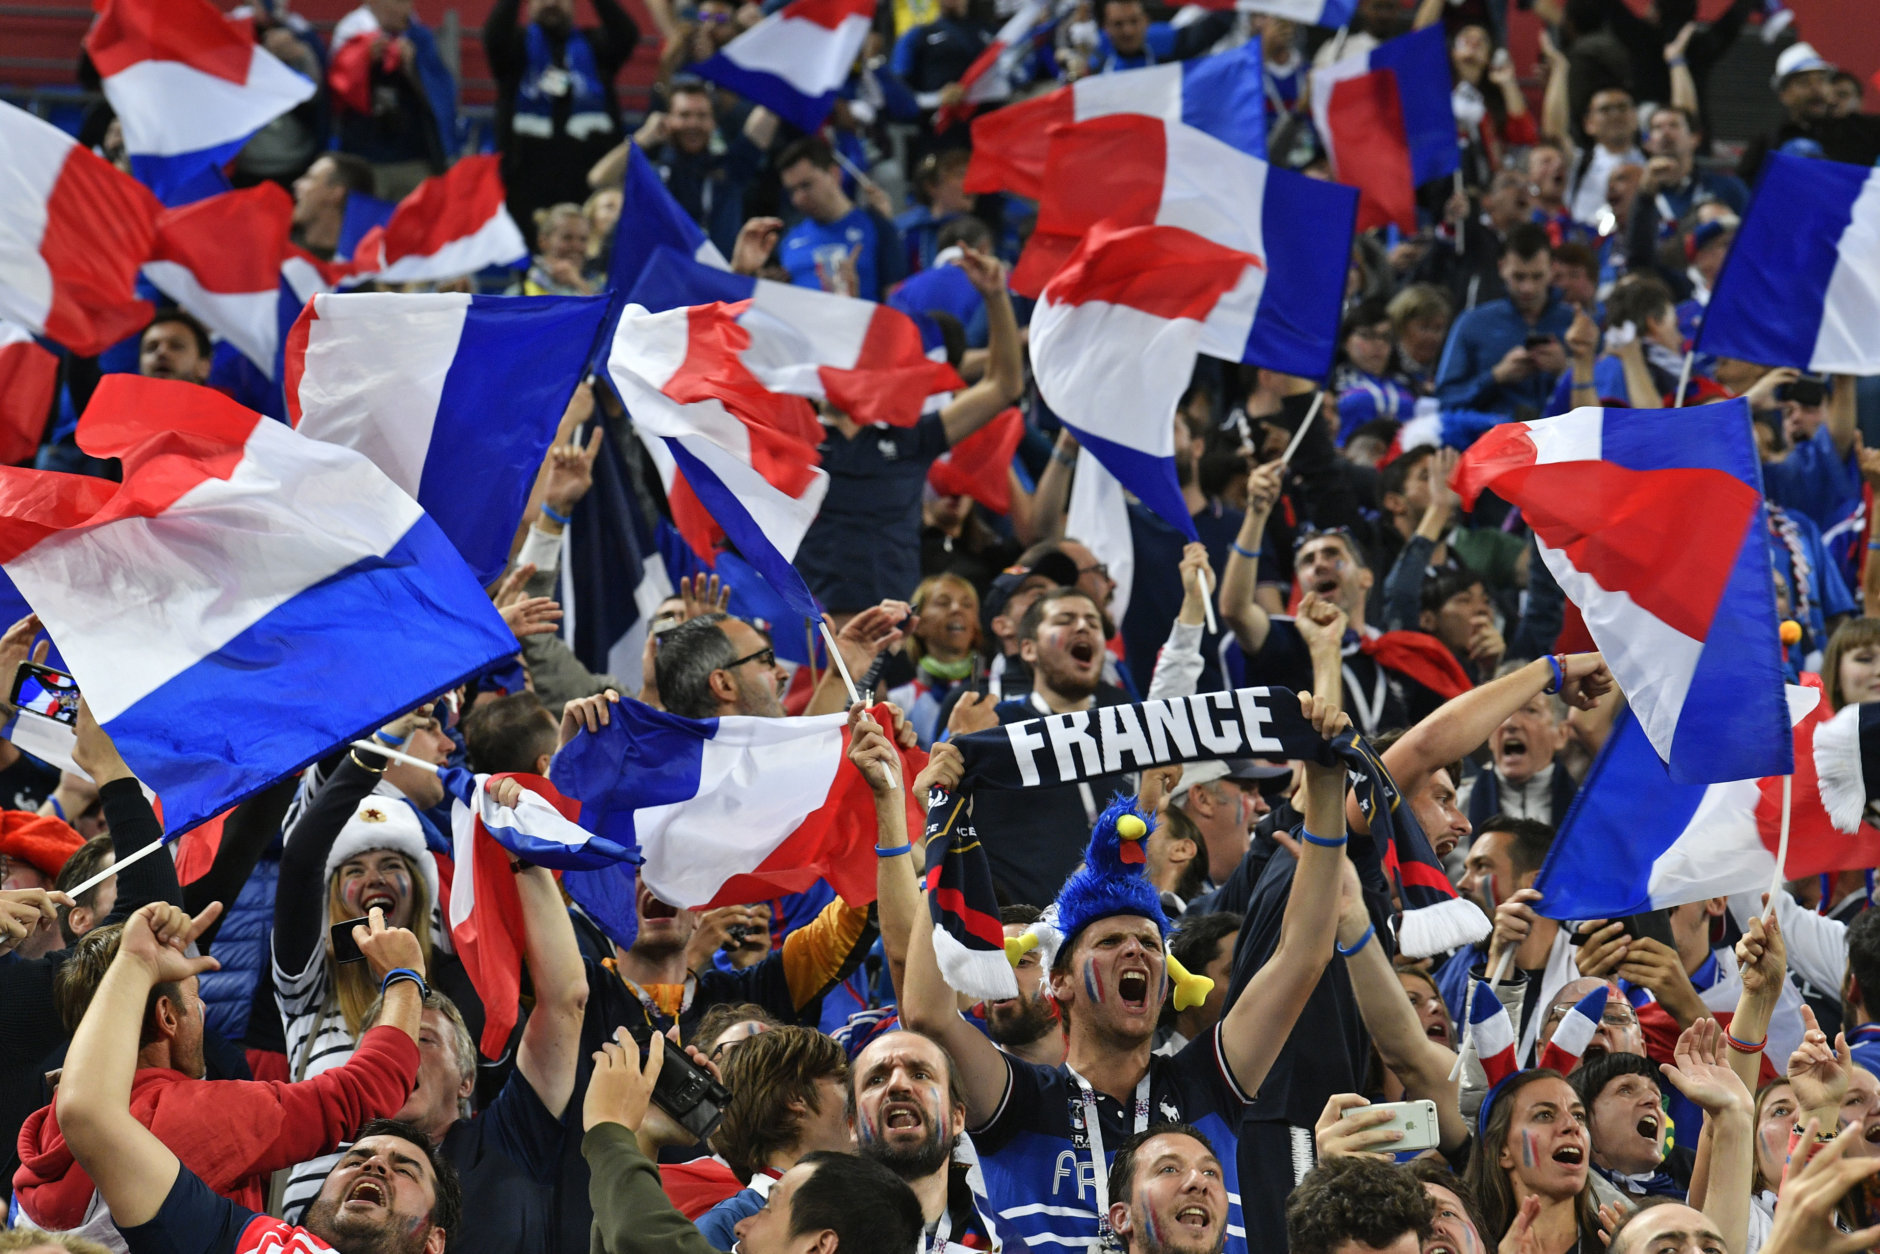 France supporter cheer after their team advanced to the final during the semifinal match between France and Belgium at the 2018 soccer World Cup in the St. Petersburg Stadium in St. Petersburg, Russia, Tuesday, July 10, 2018. (AP Photo/Martin Meissner)